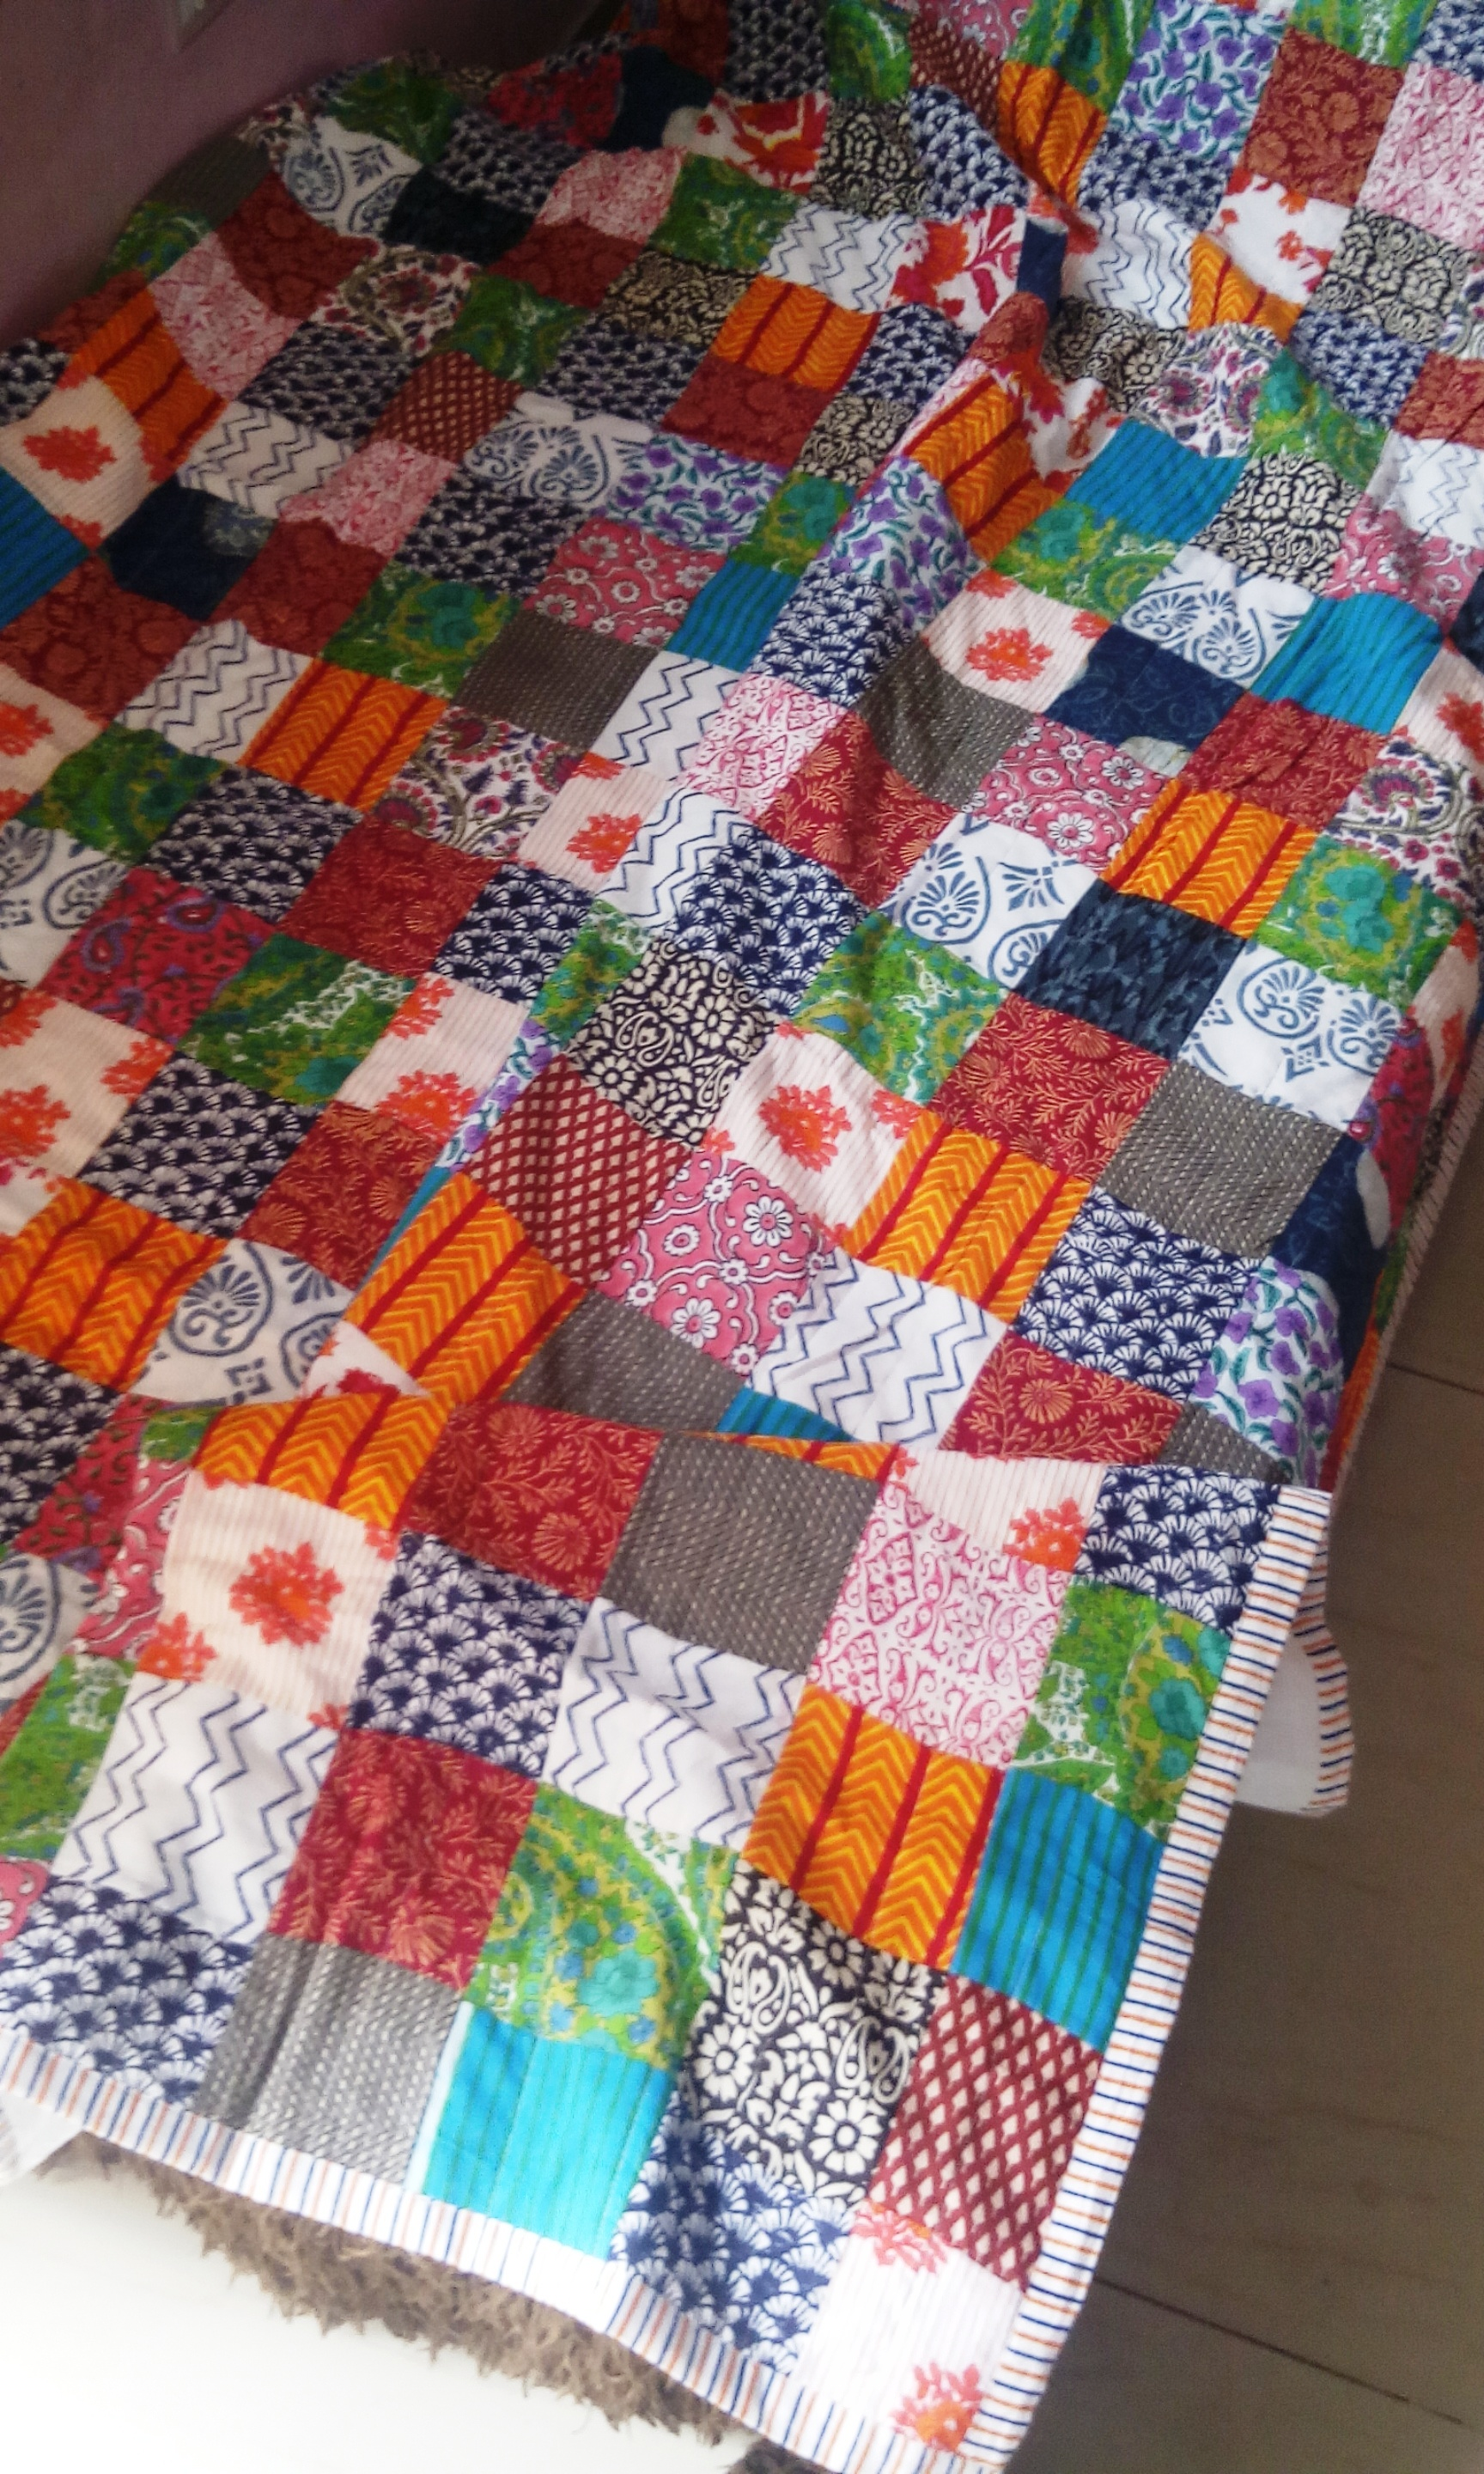 Quilted Bed Comforter (Patchwork)